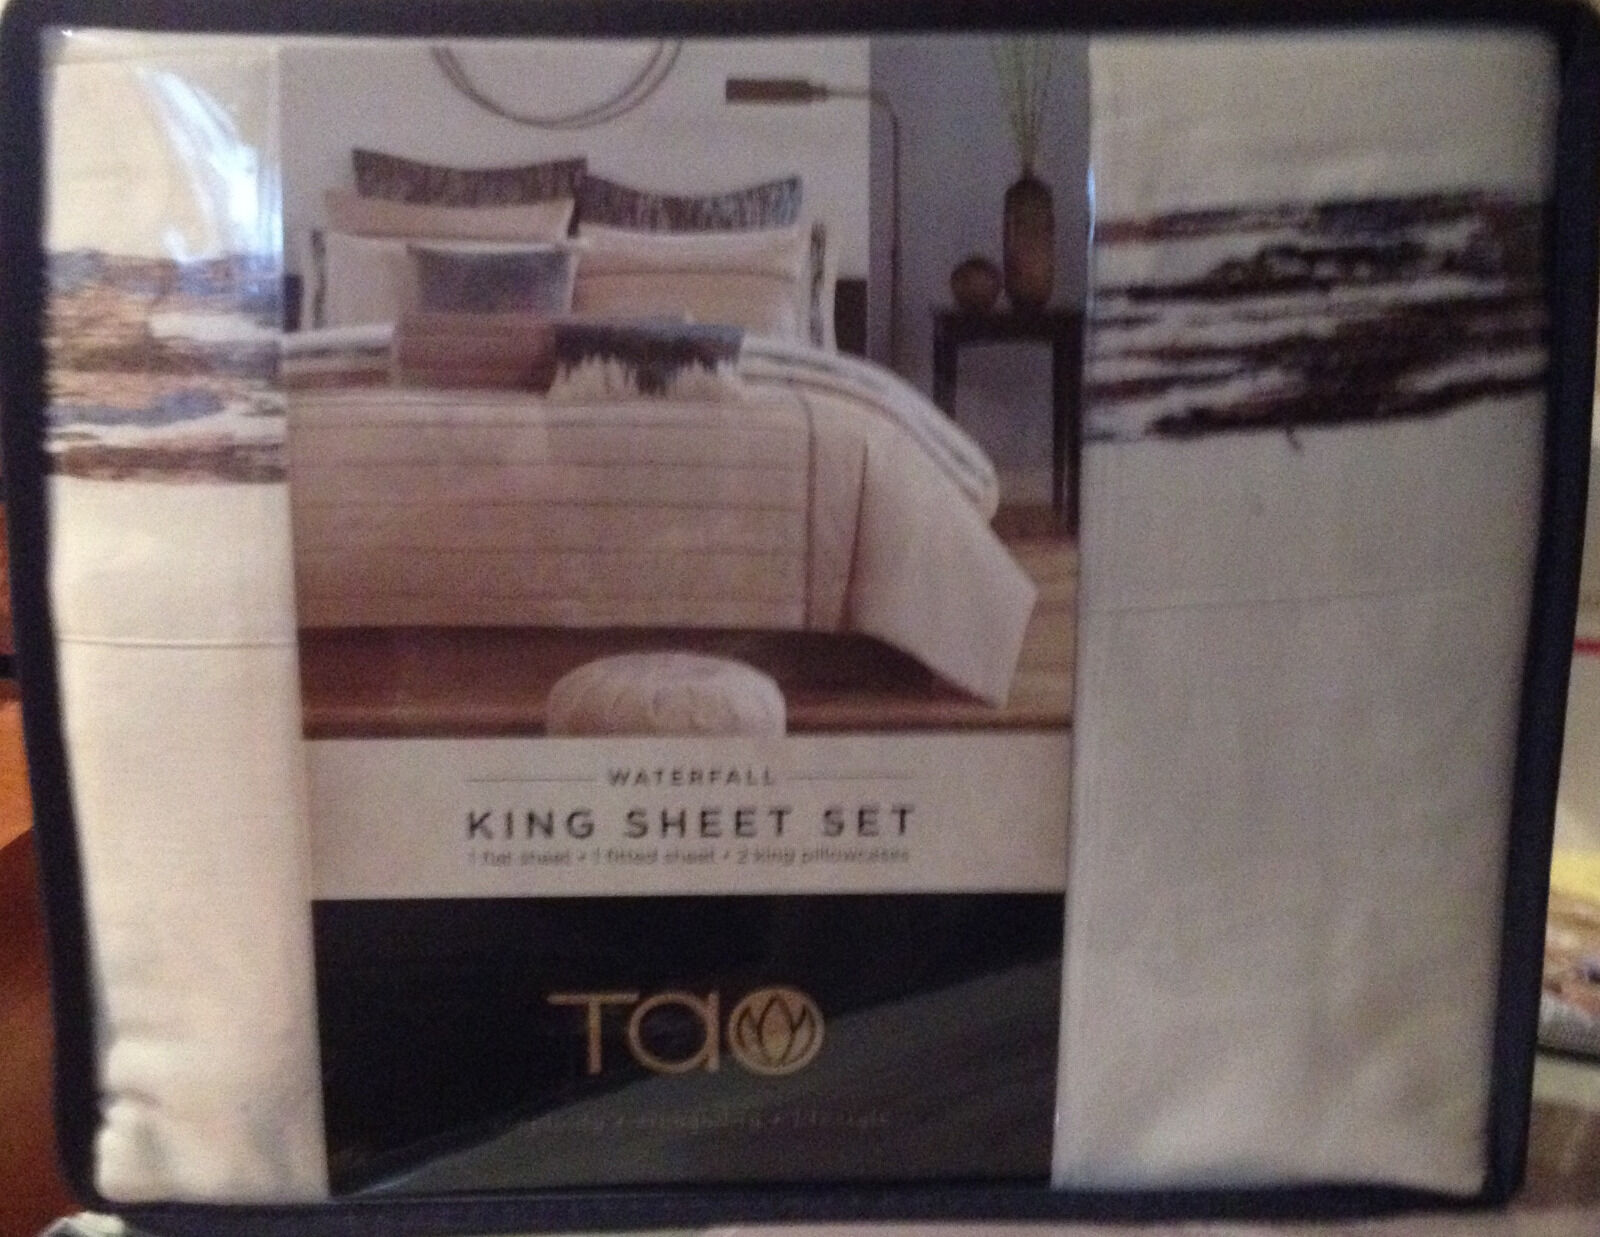 NEW TAO 4PCS KING SHEET SET - 100% COTTON SATEEN